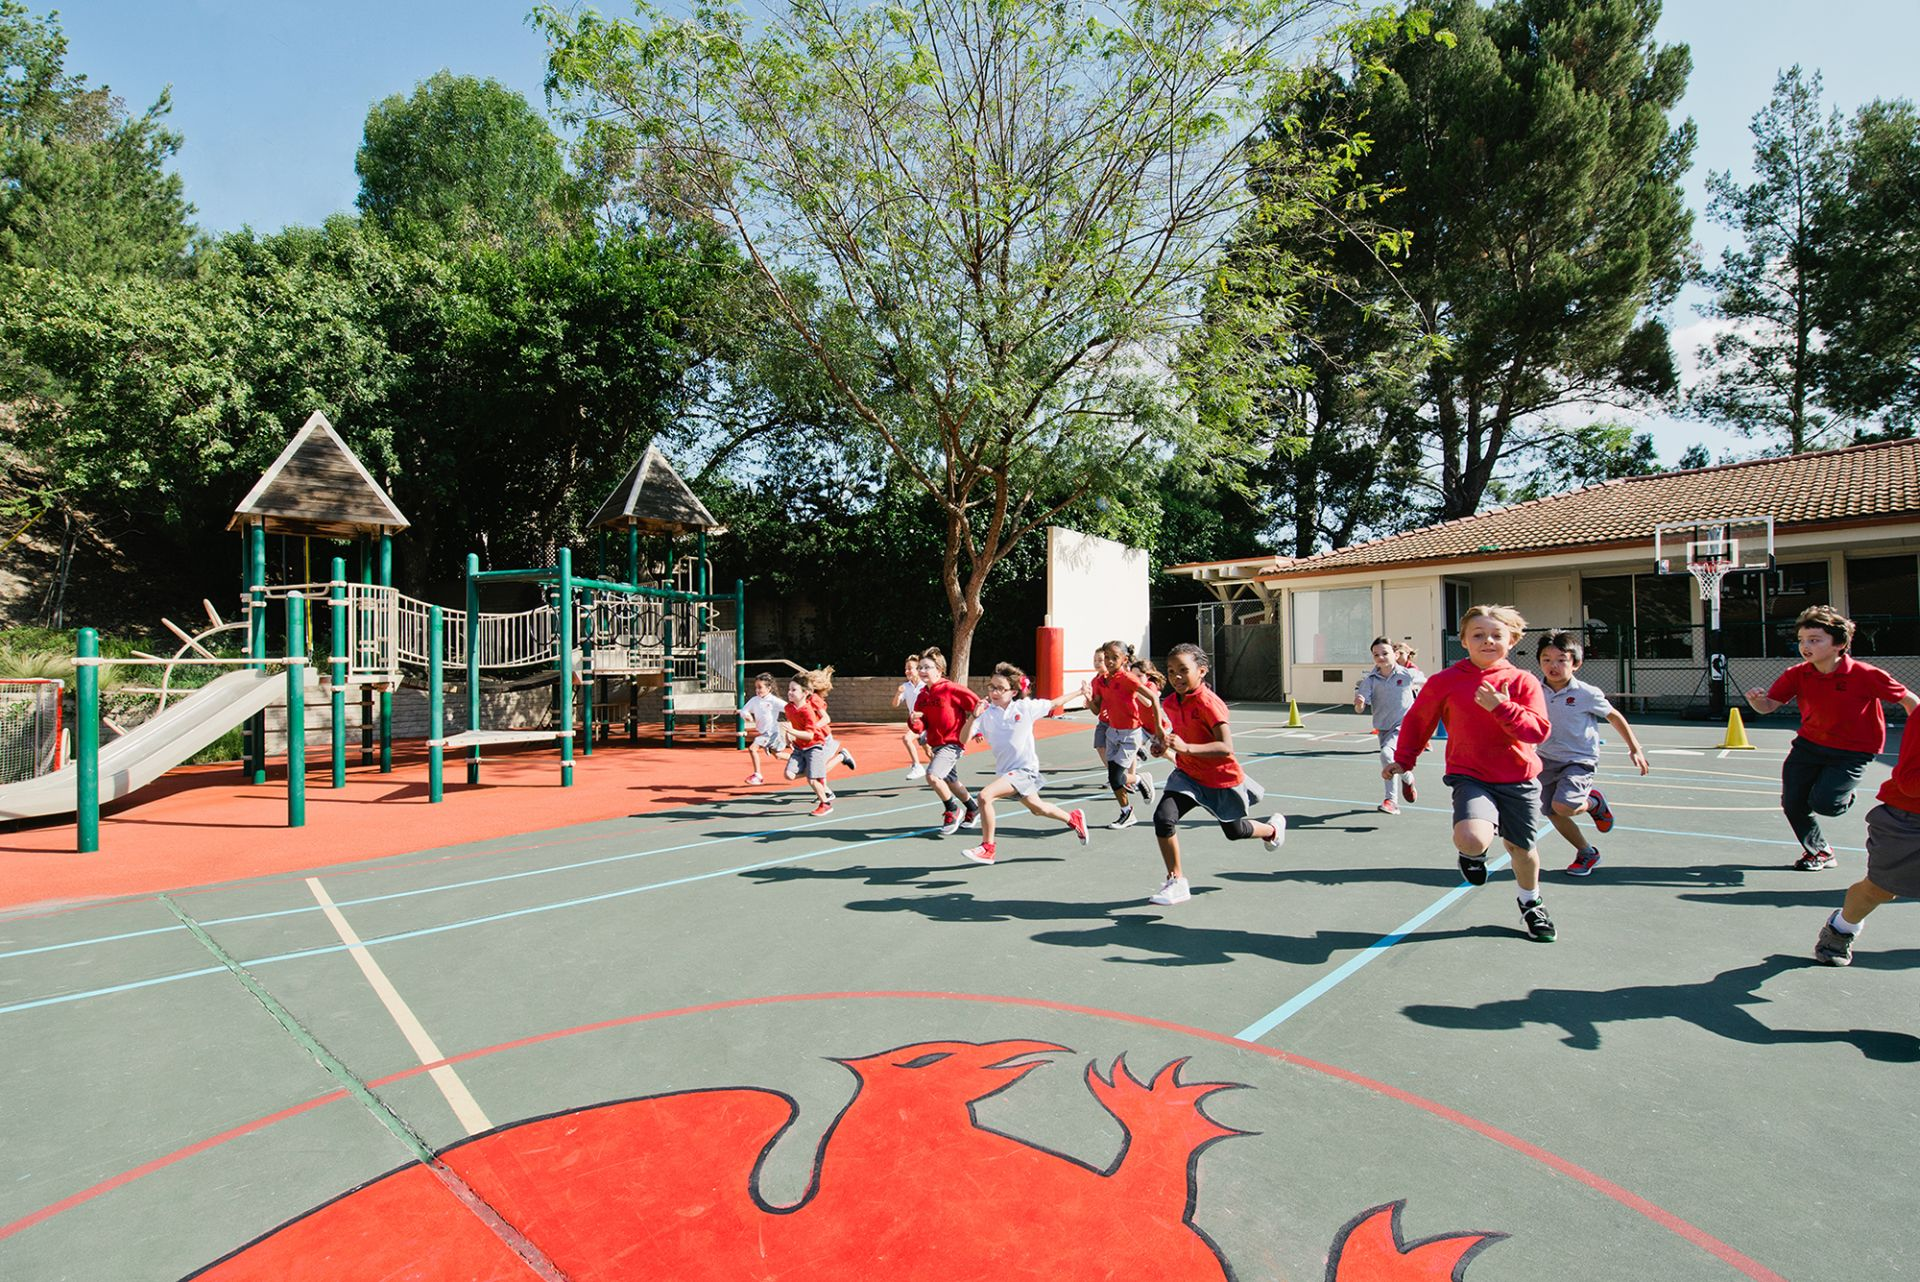 Physical education classes for kindergarten through second grade are held on the primary play yard.